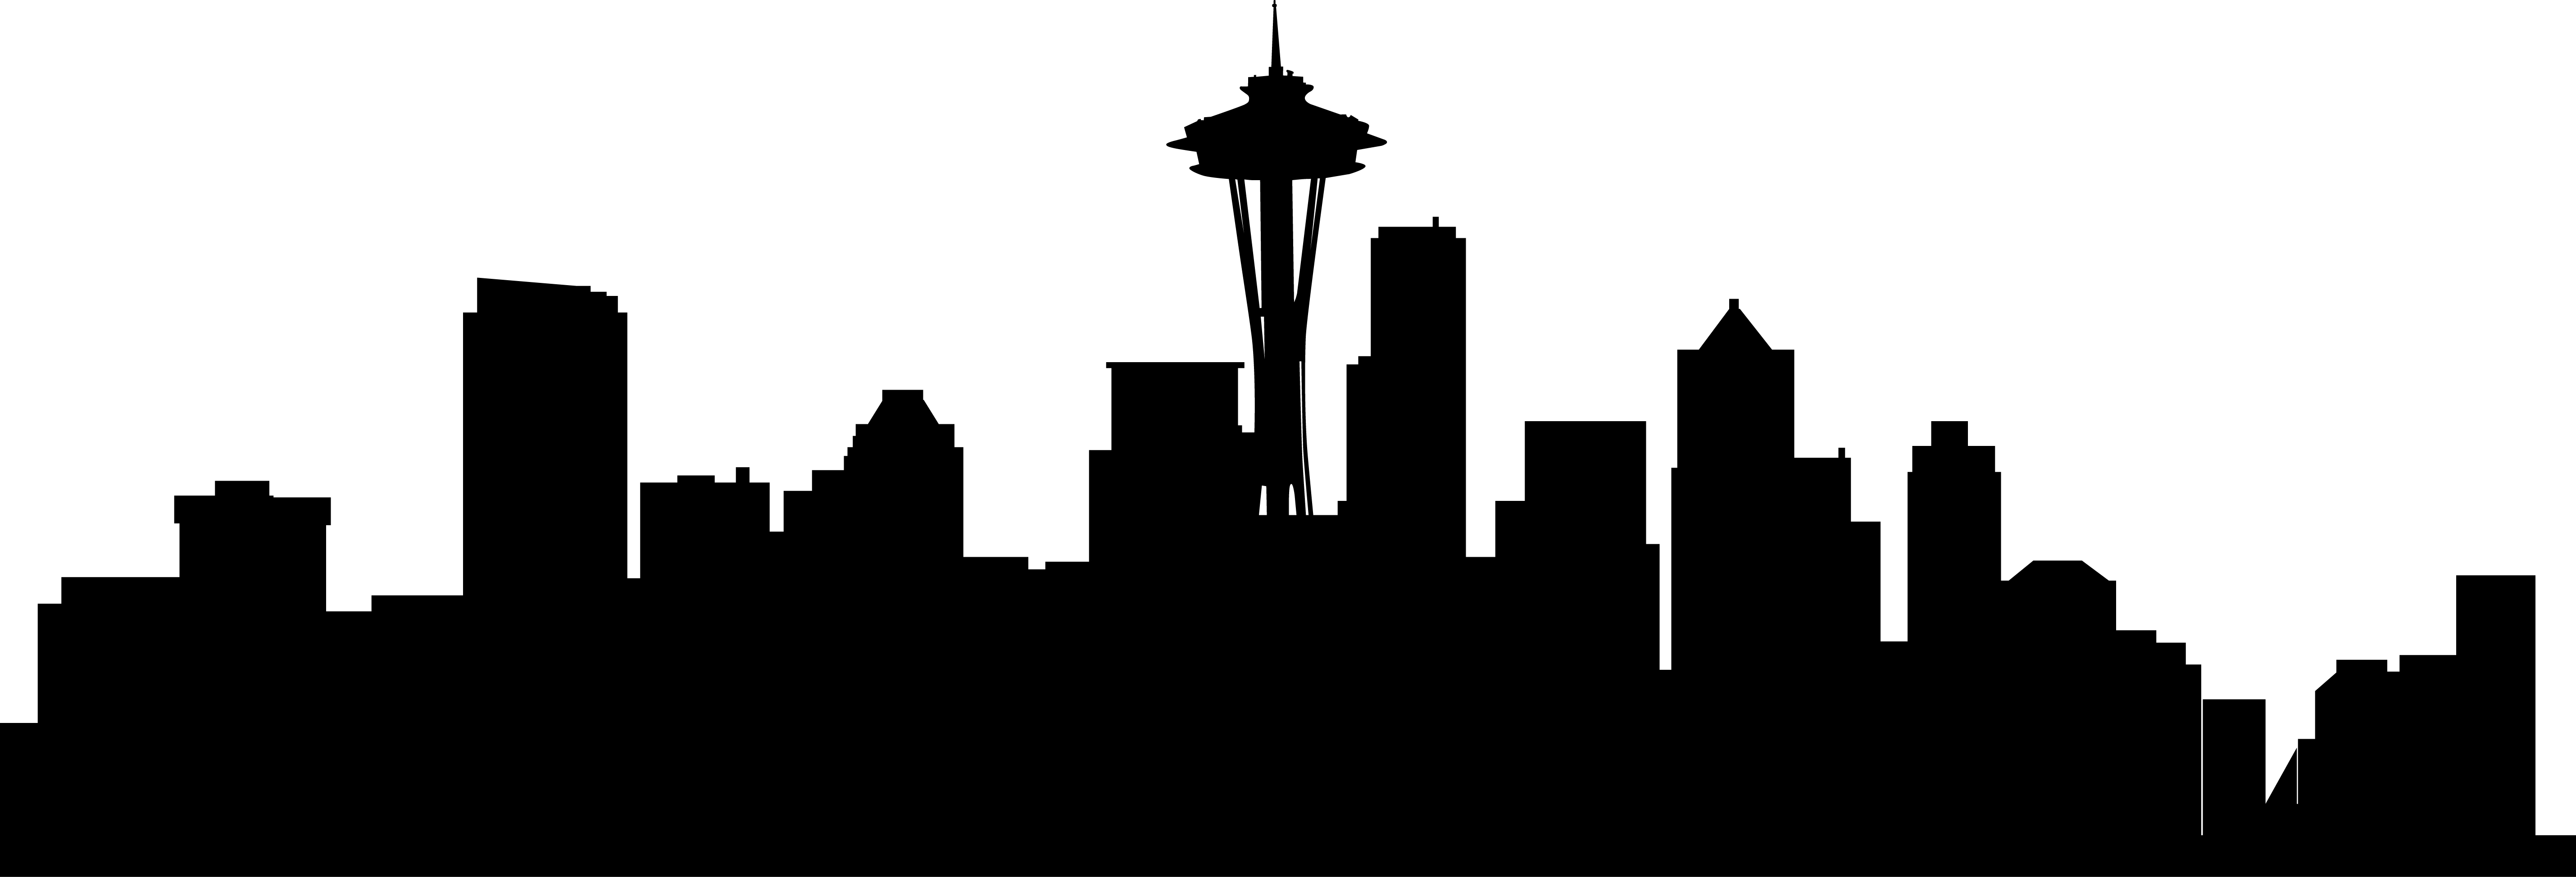 Seattle Outline.